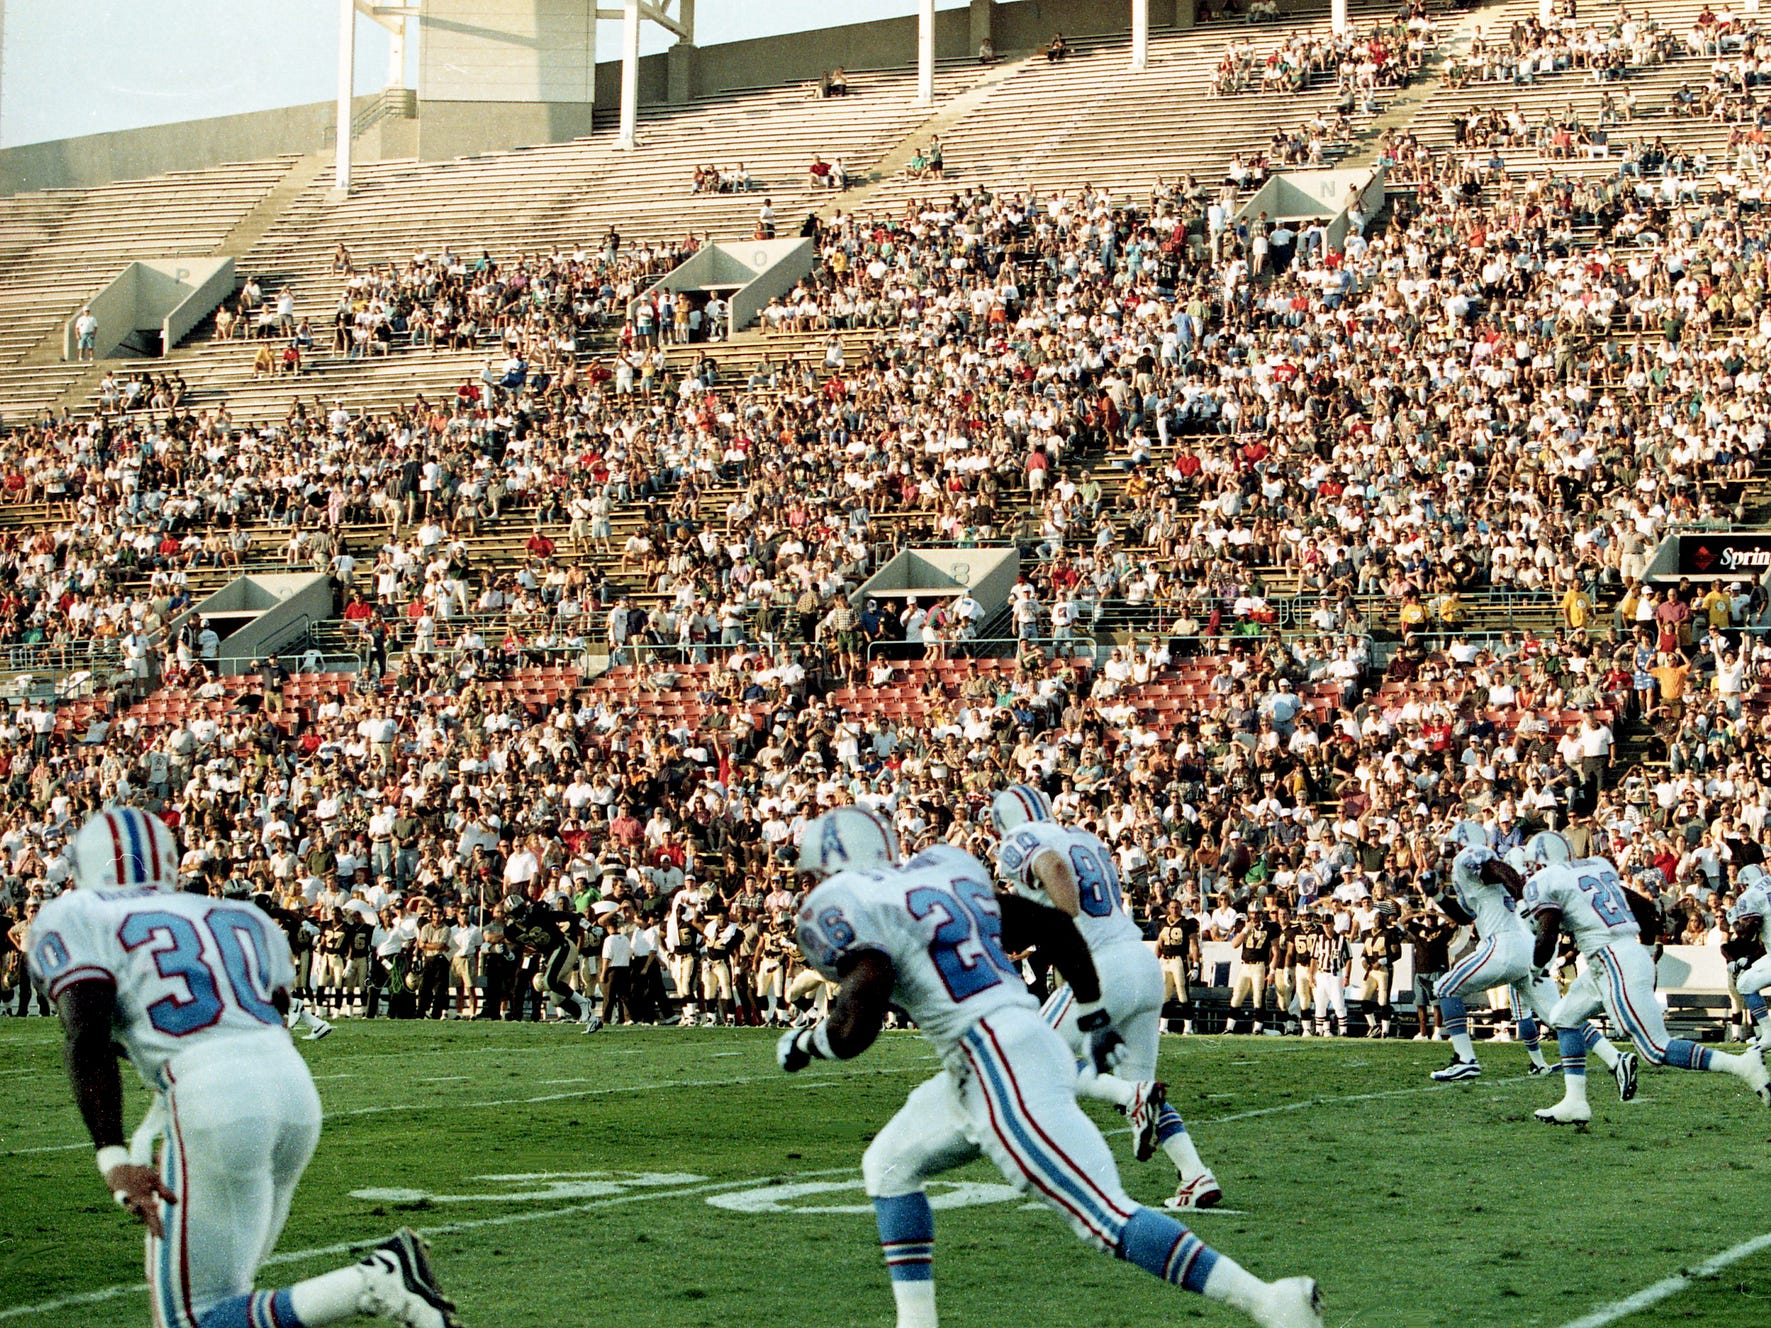 Tennessee Oilers Anthony Dorsett (30), Rayna Stewart (26), Michael Roan (80) and others heads down field on their very first kickoff in their new state Aug. 2, 1997. The Oilers face New Orleans Saints at their temporary home at the Library Bowl in Memphis.